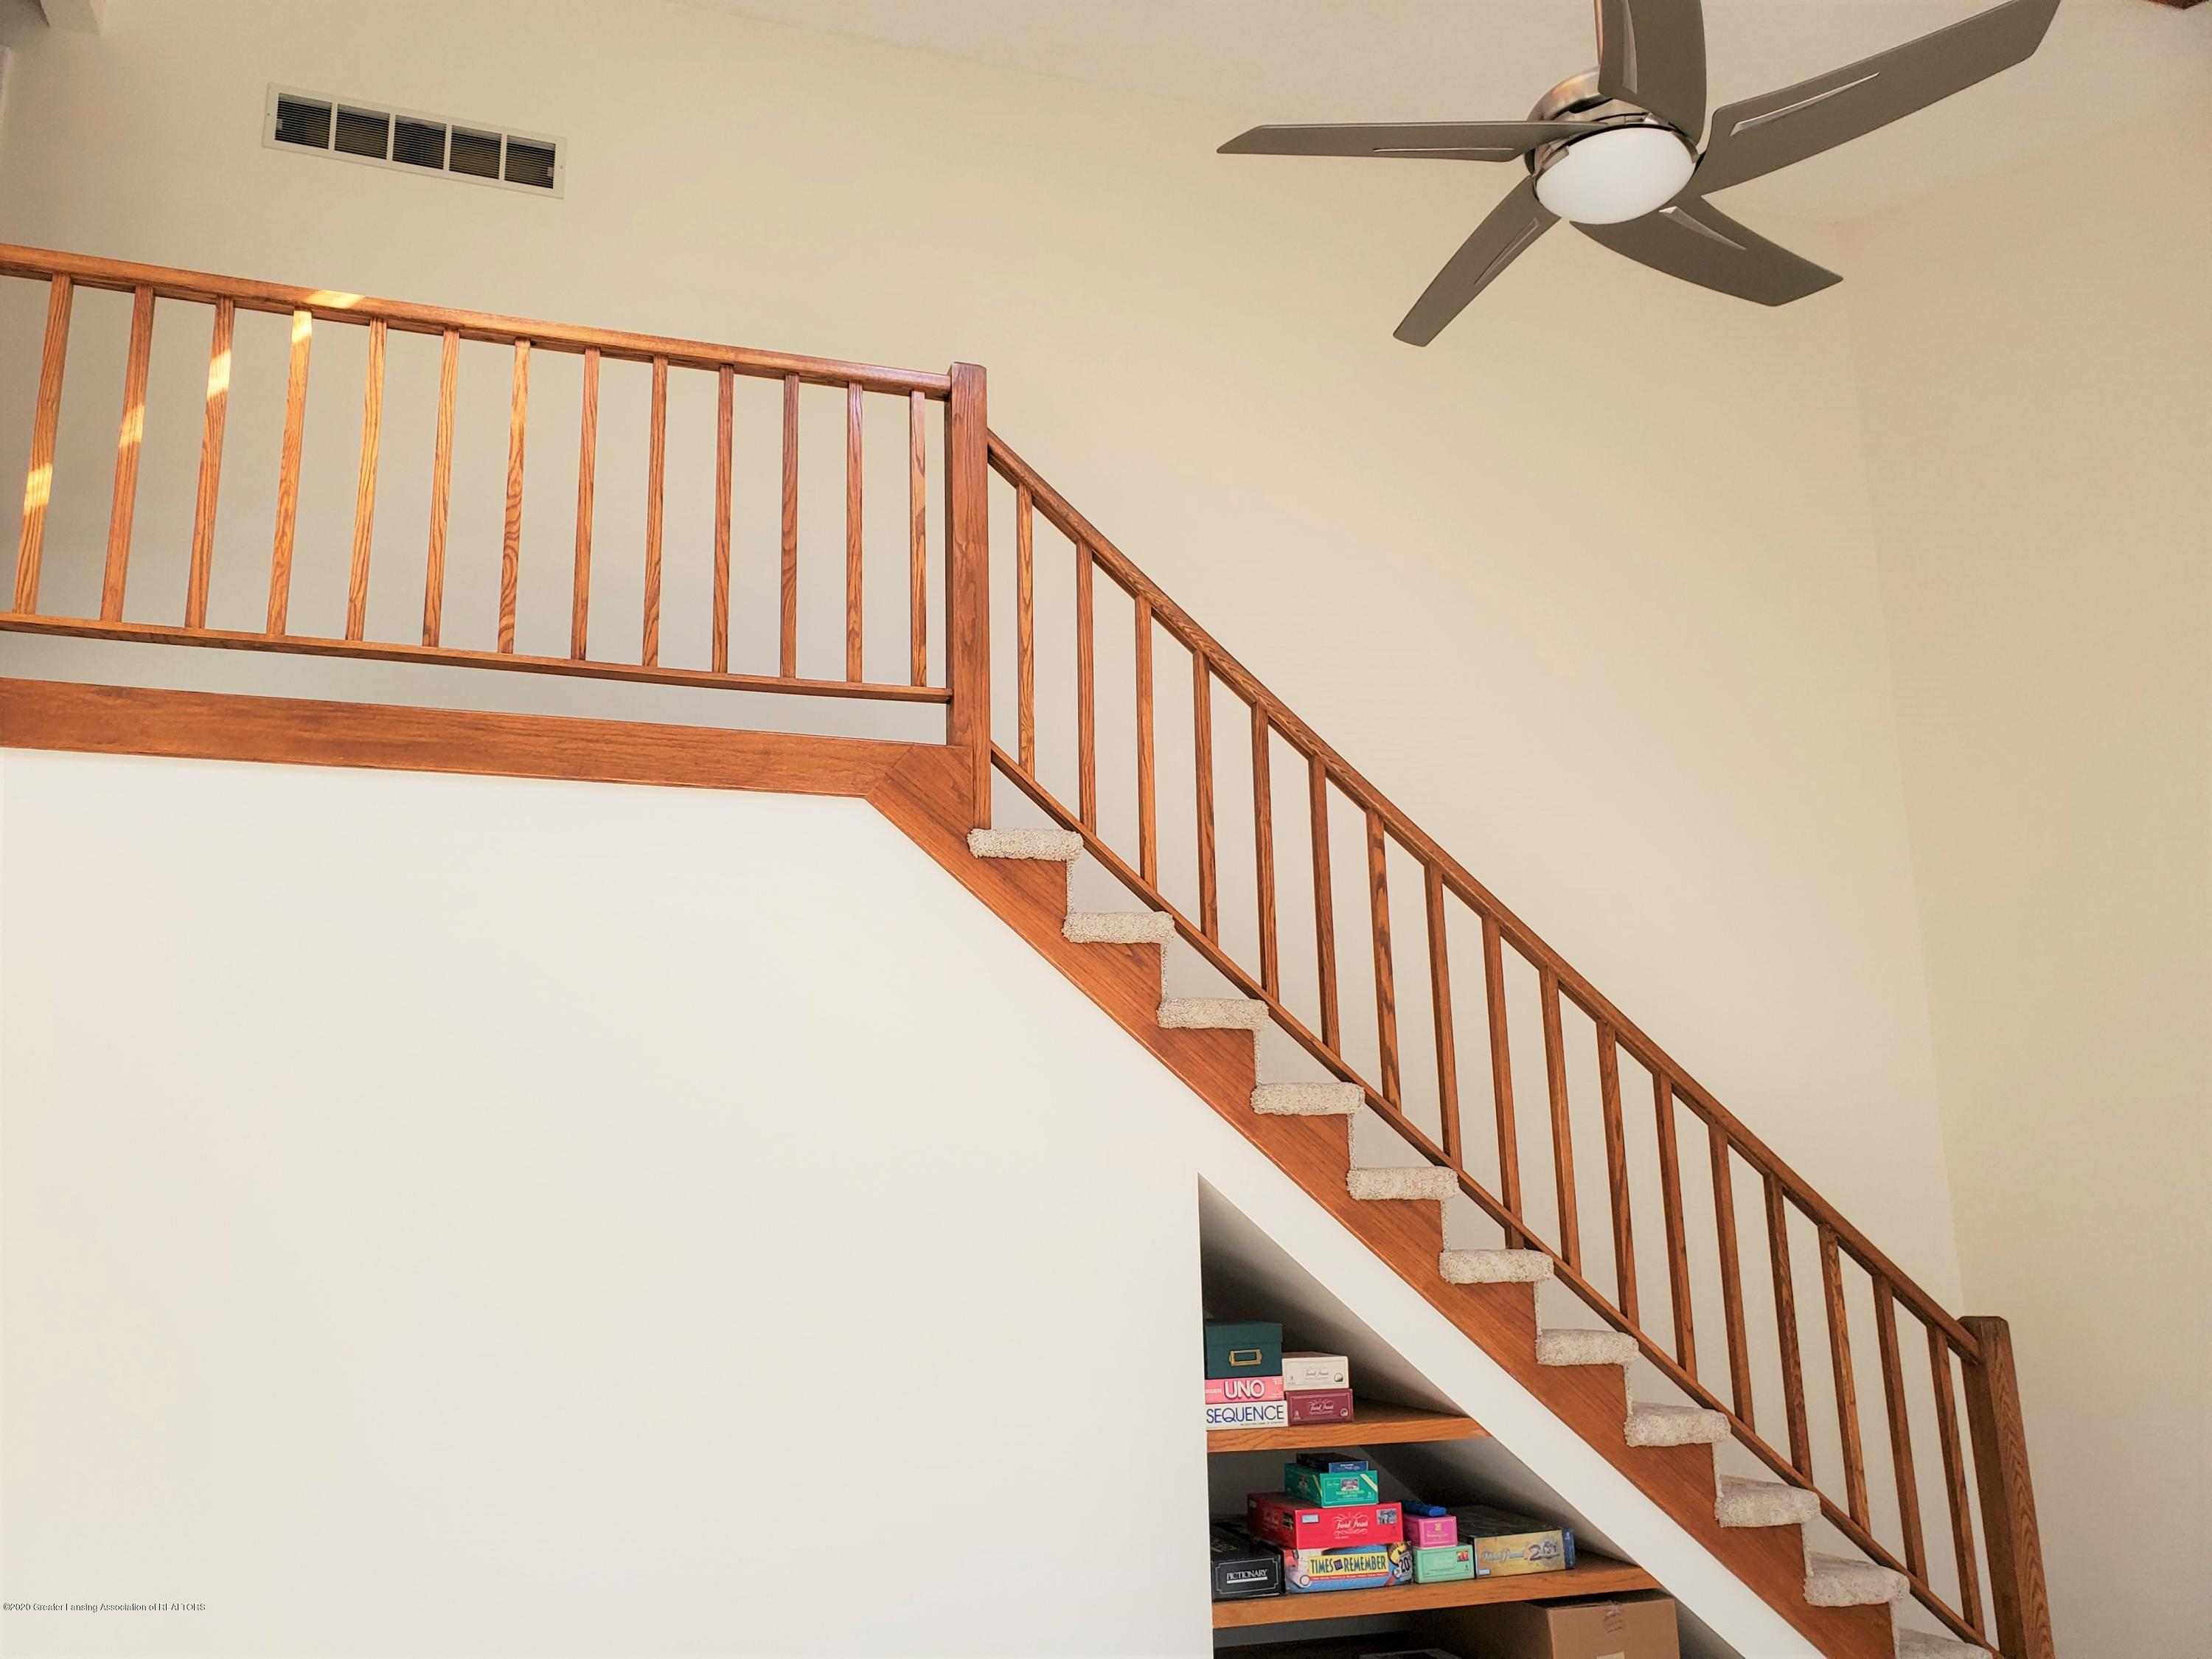 1075 Nautical Dr - Stairs in Family Room to Upper Level - 18